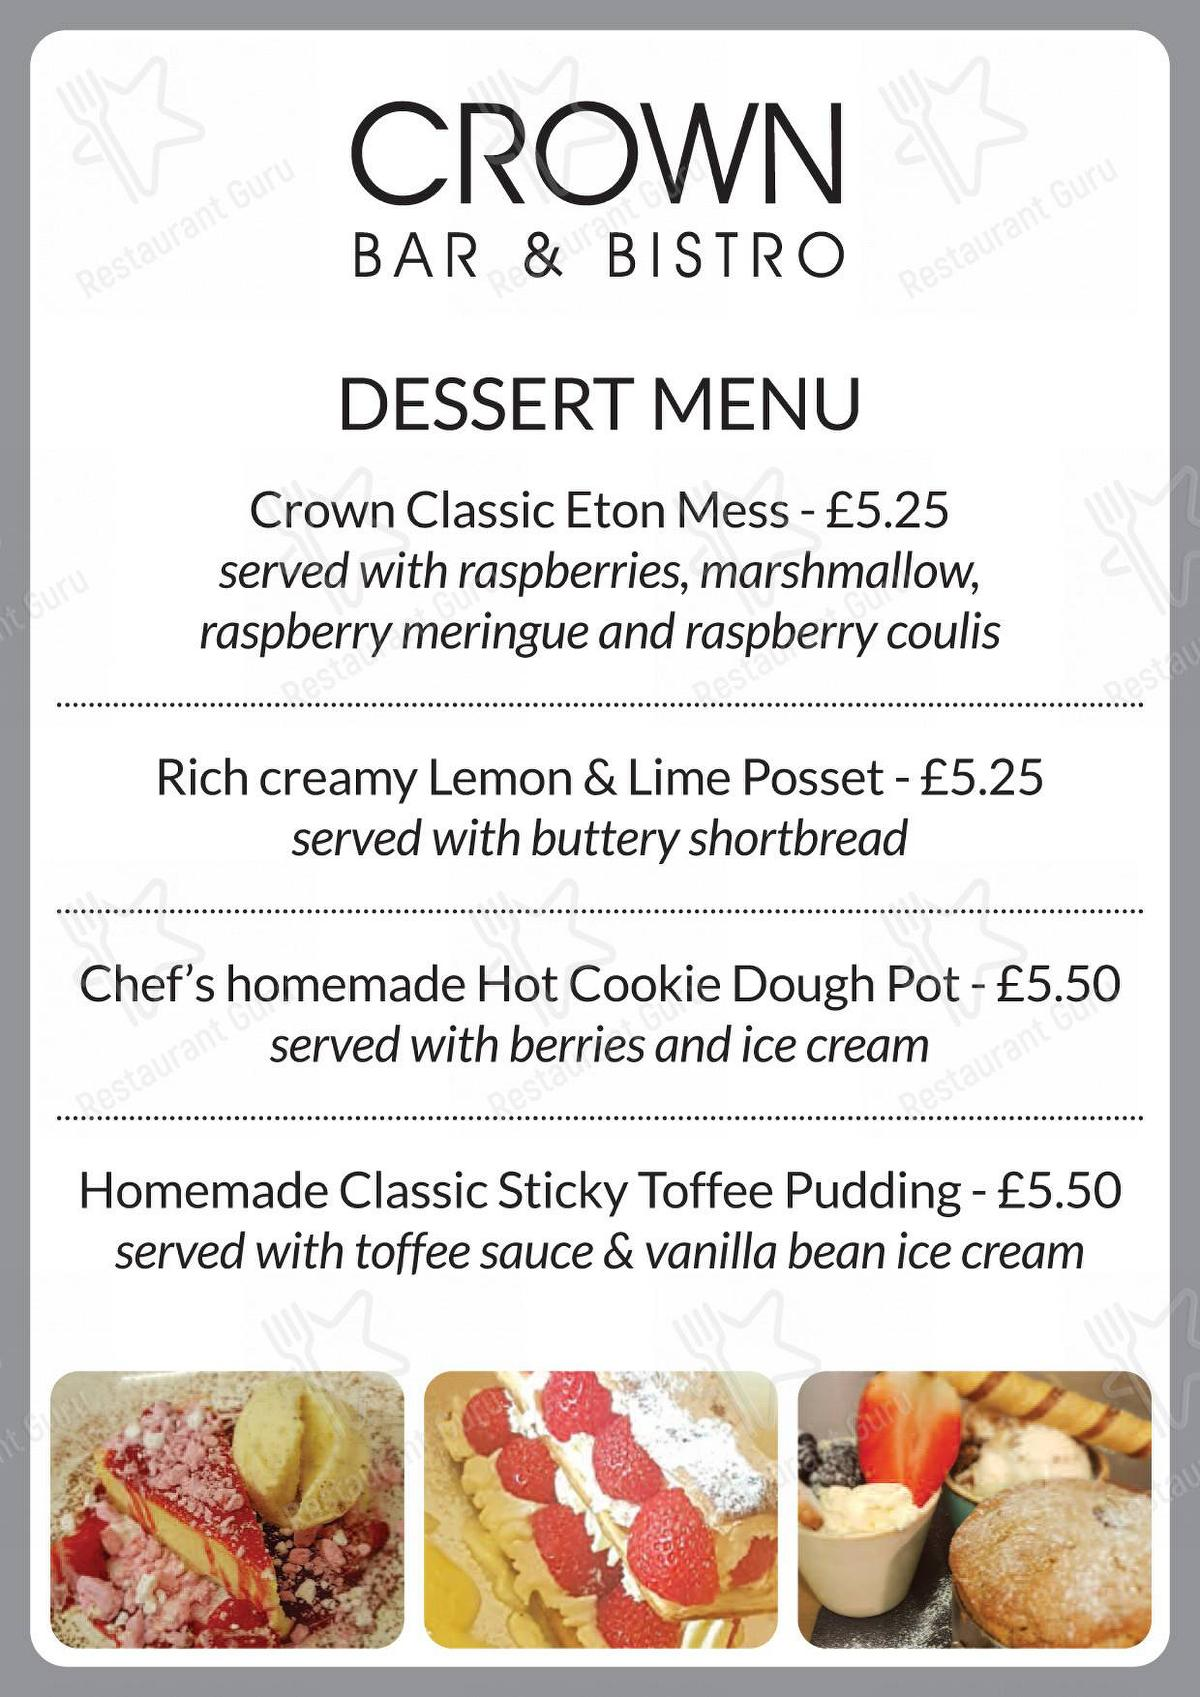 Menu for the The Crown Bar & Bistro restaurant